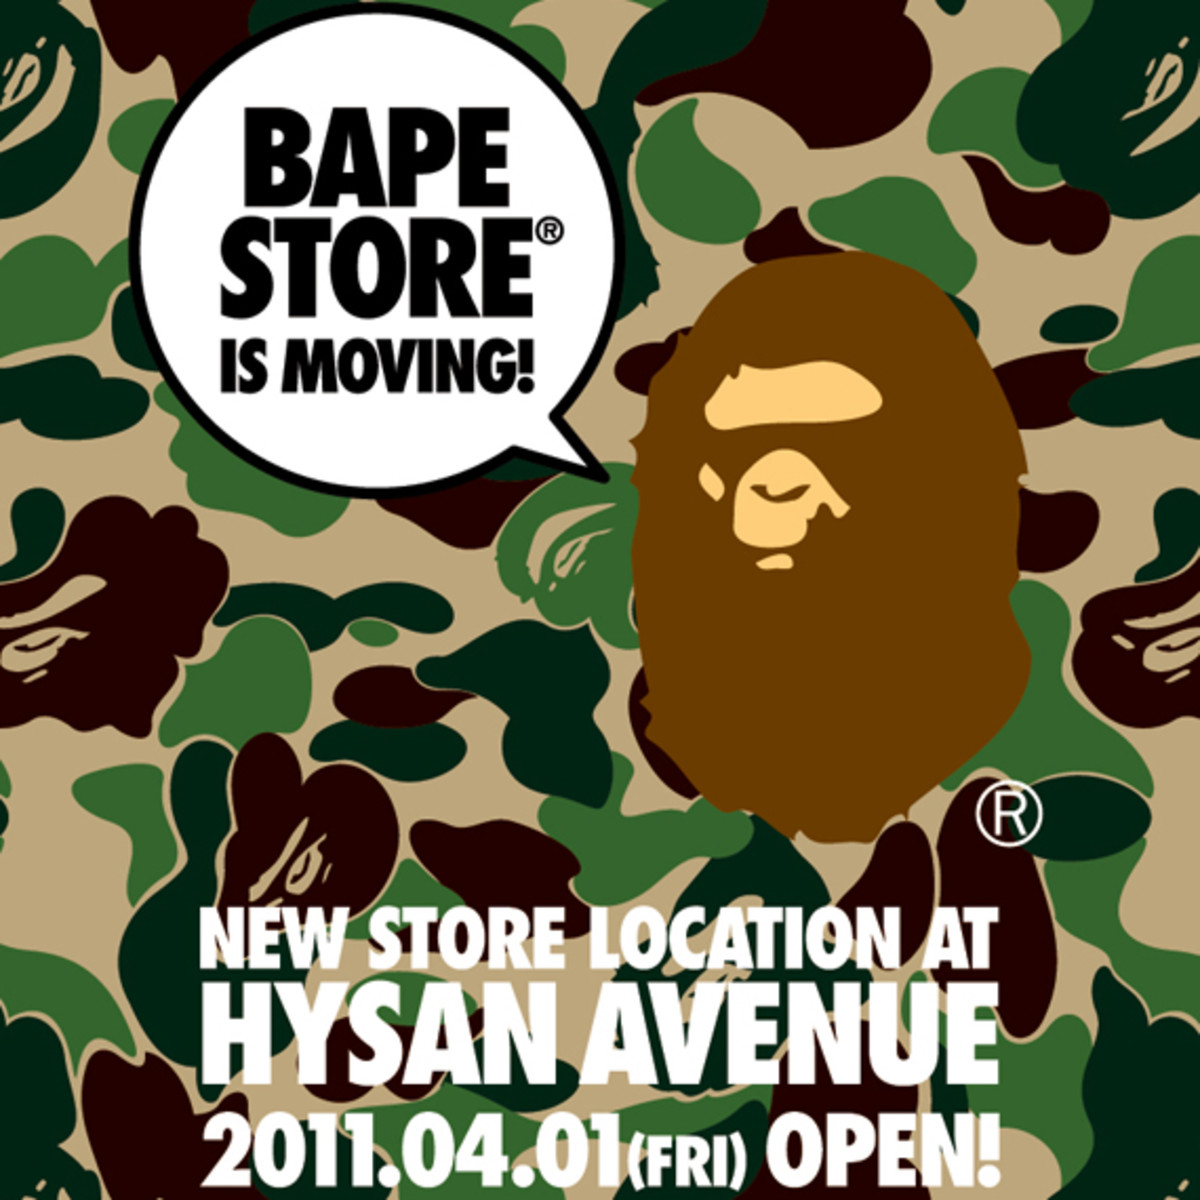 bape relocation edm